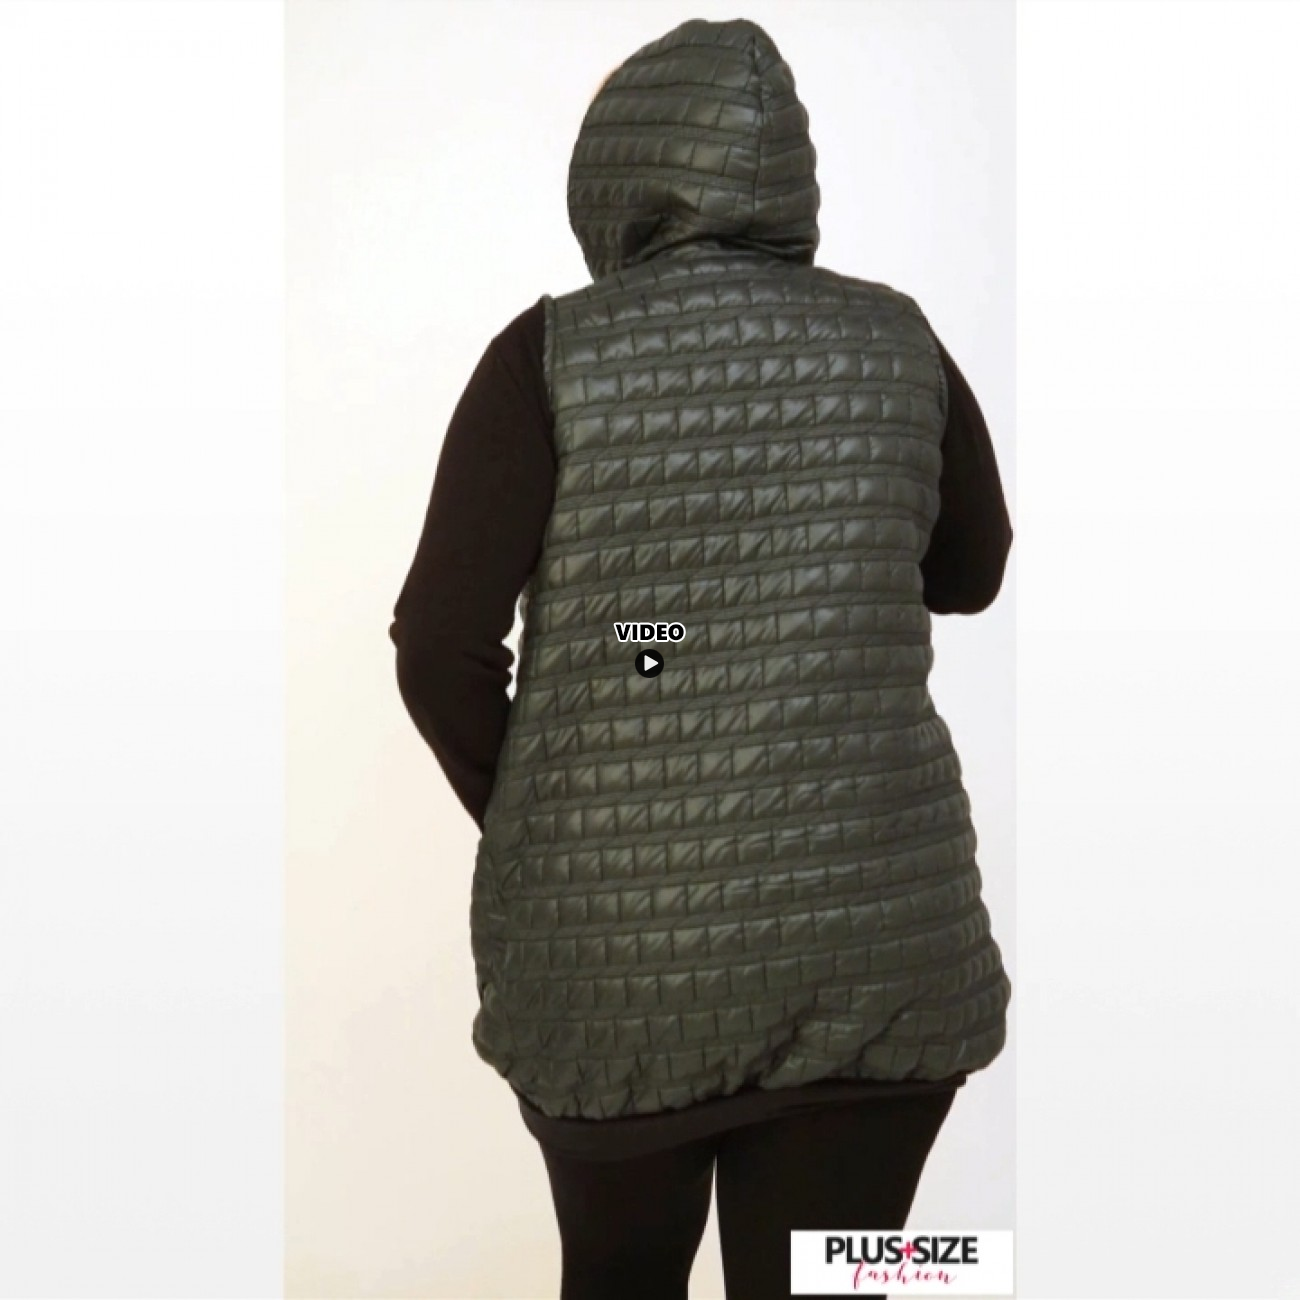 B20-6629A Sleeveless Jacket with hood - Olive Green